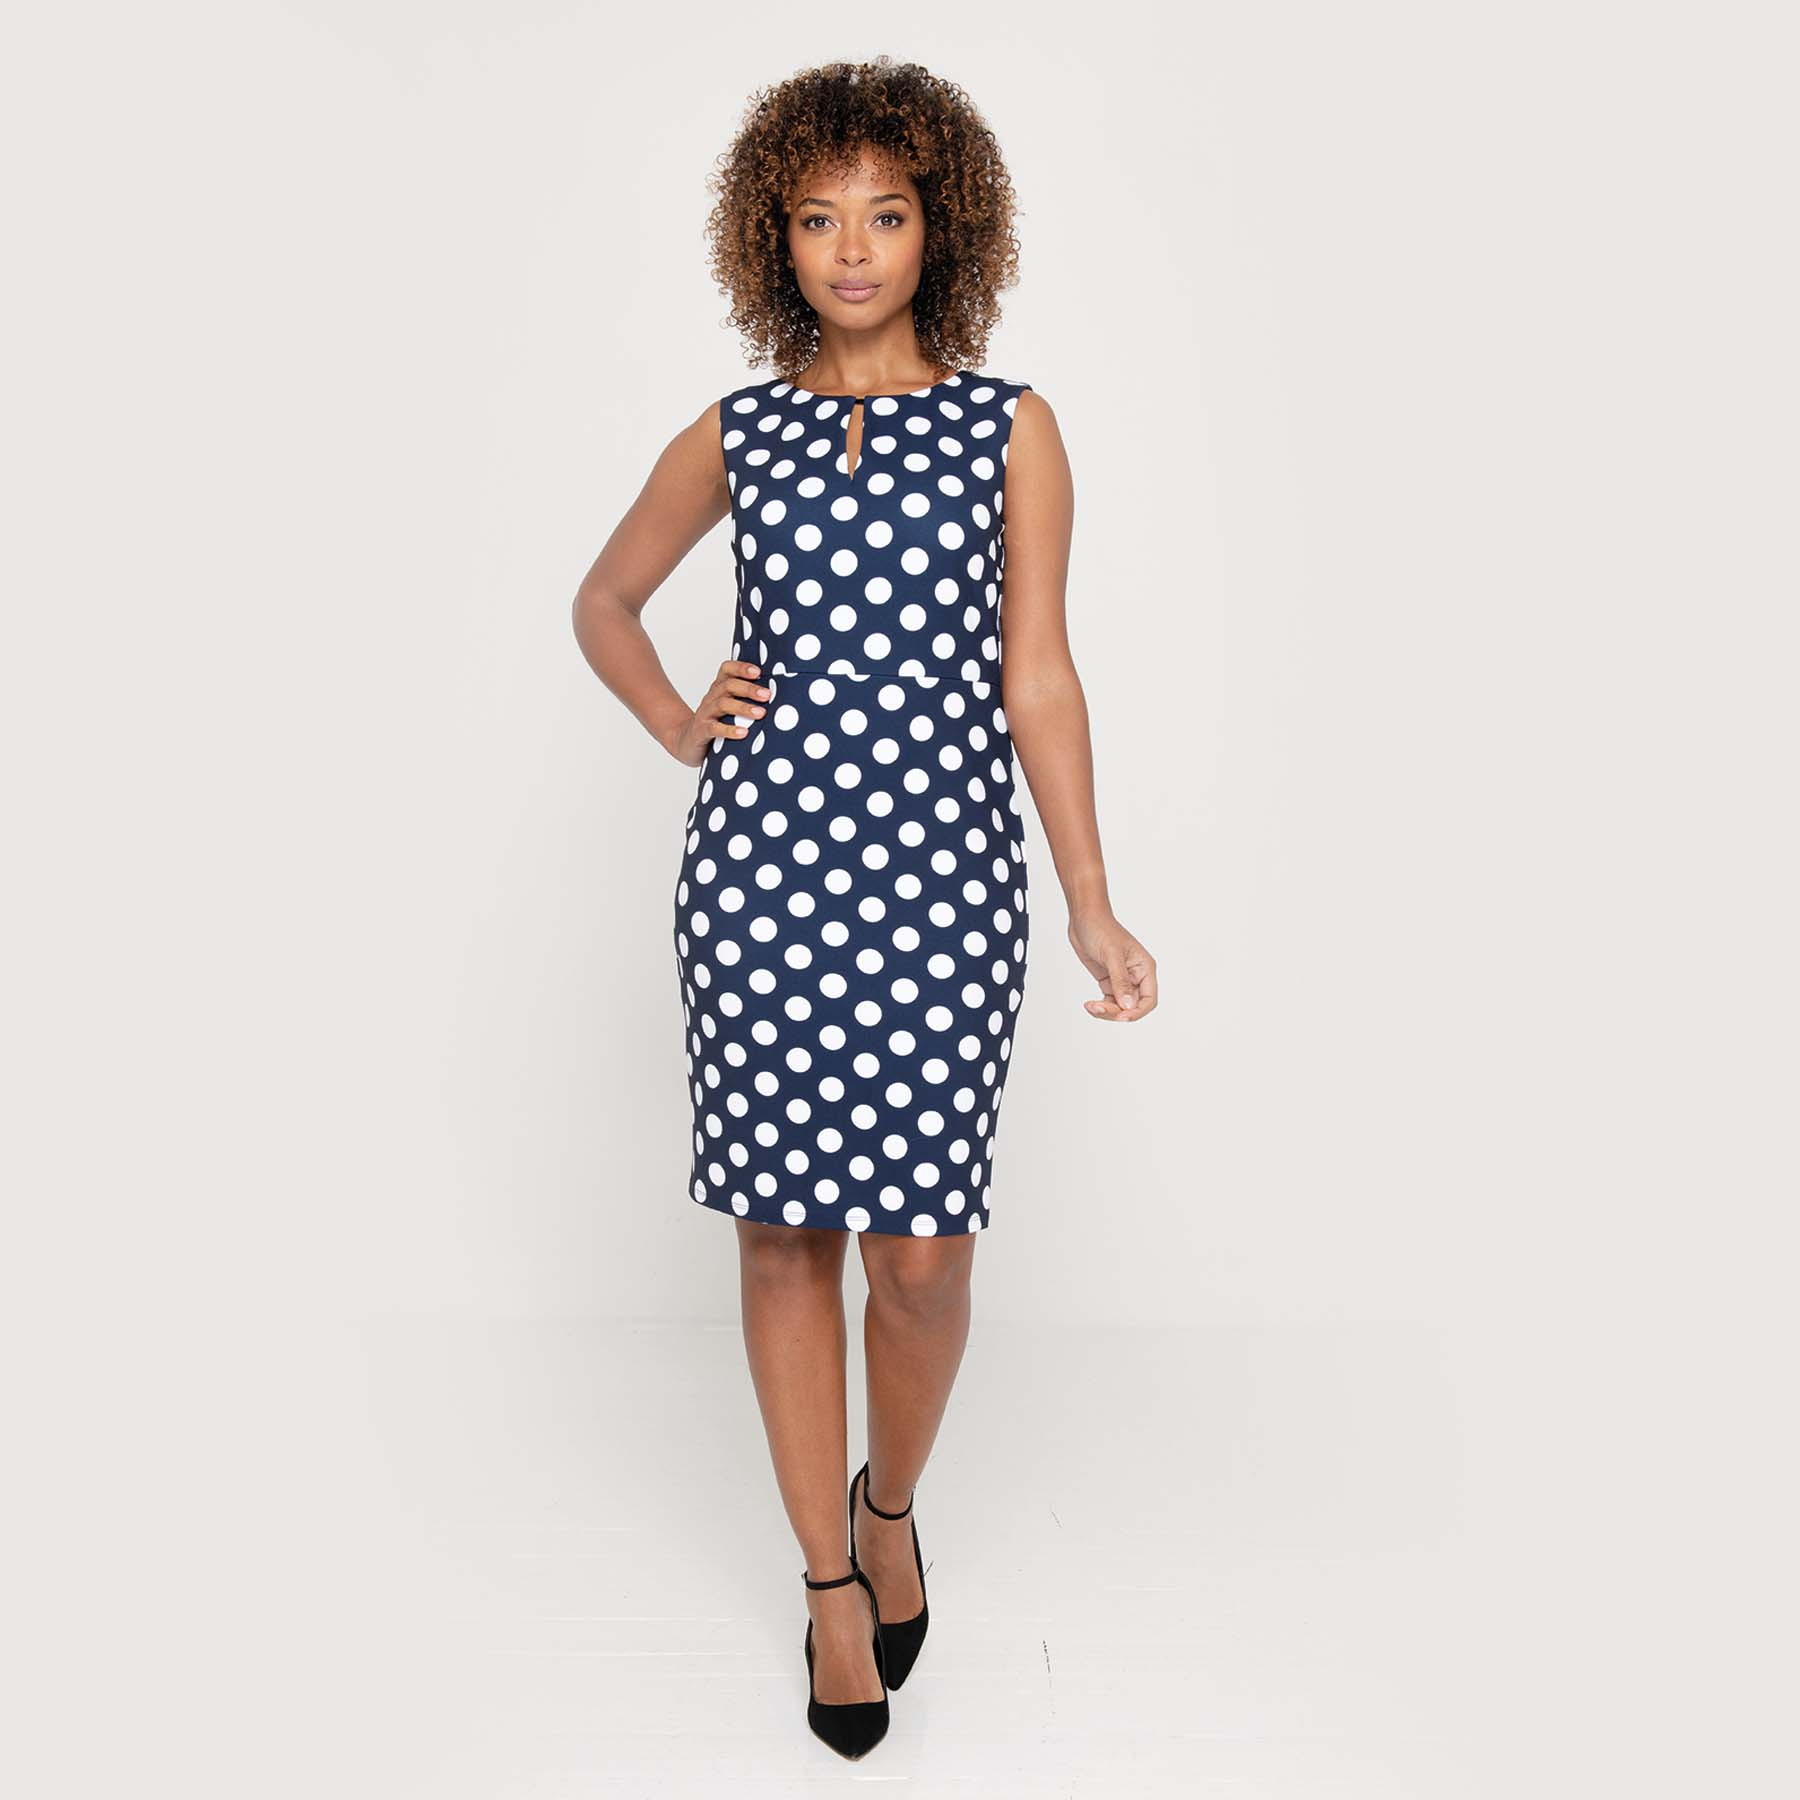 The new Oyoke ladies polka dot dress from clubclass